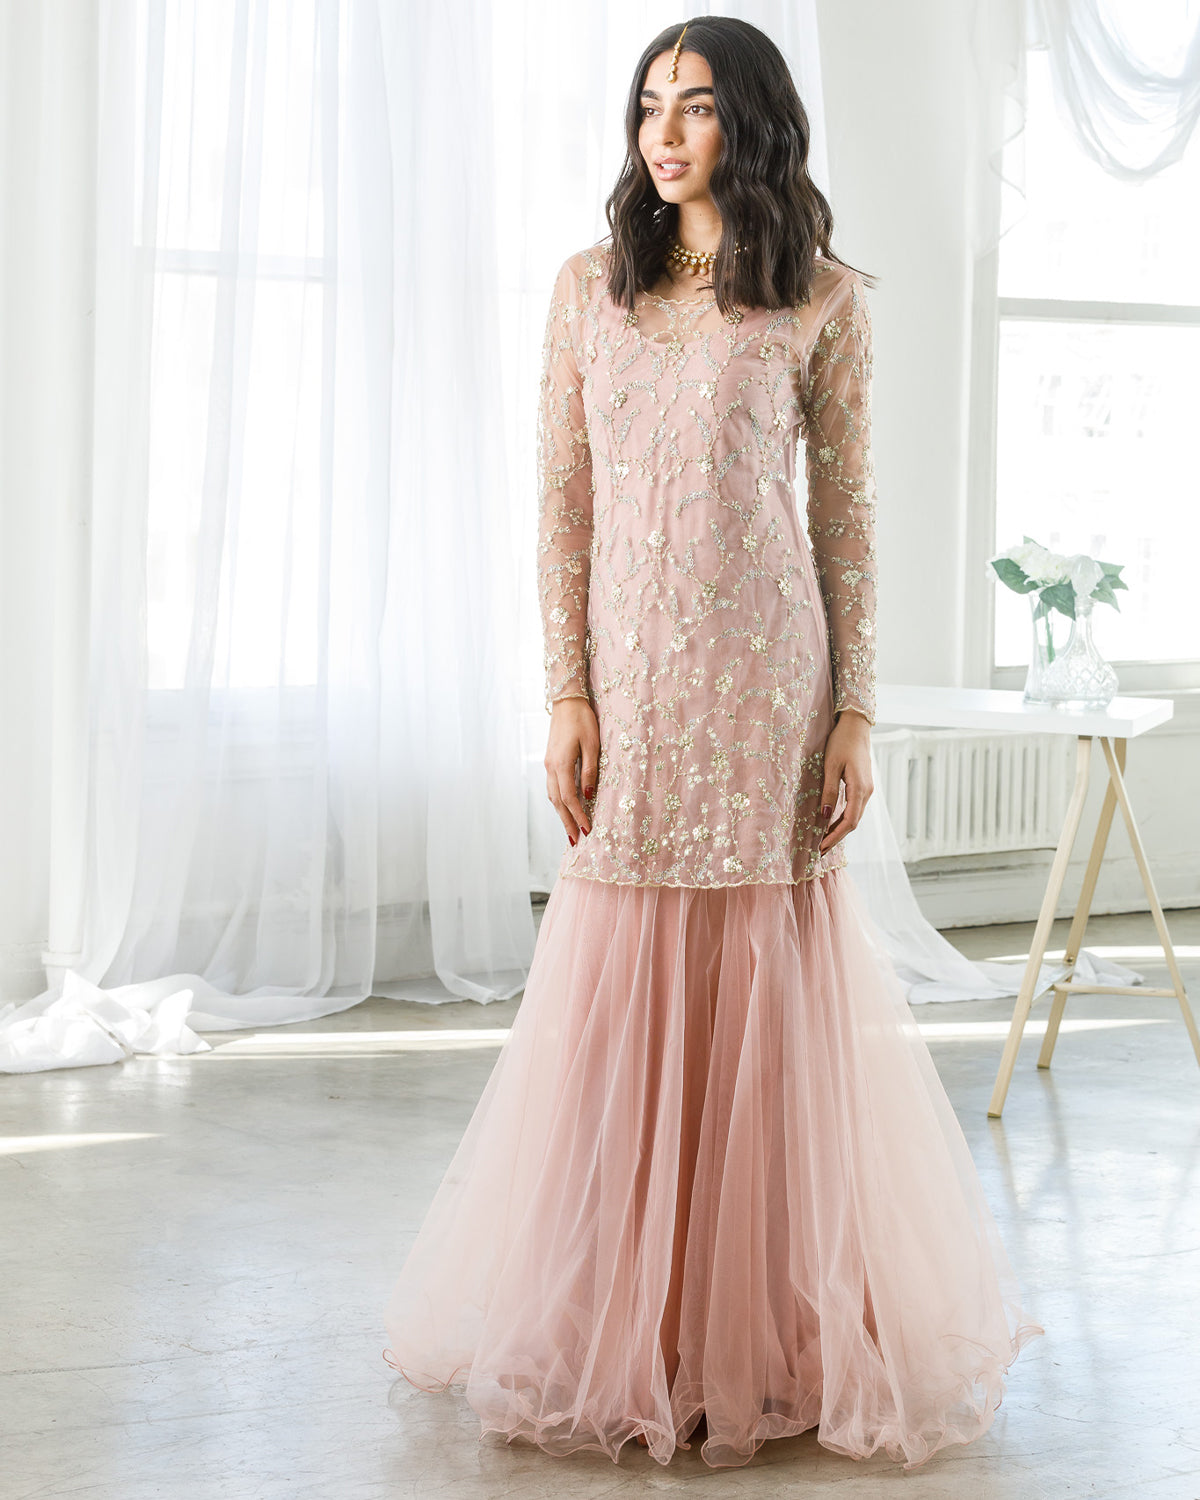 Pink tulle gown with sheer tunic